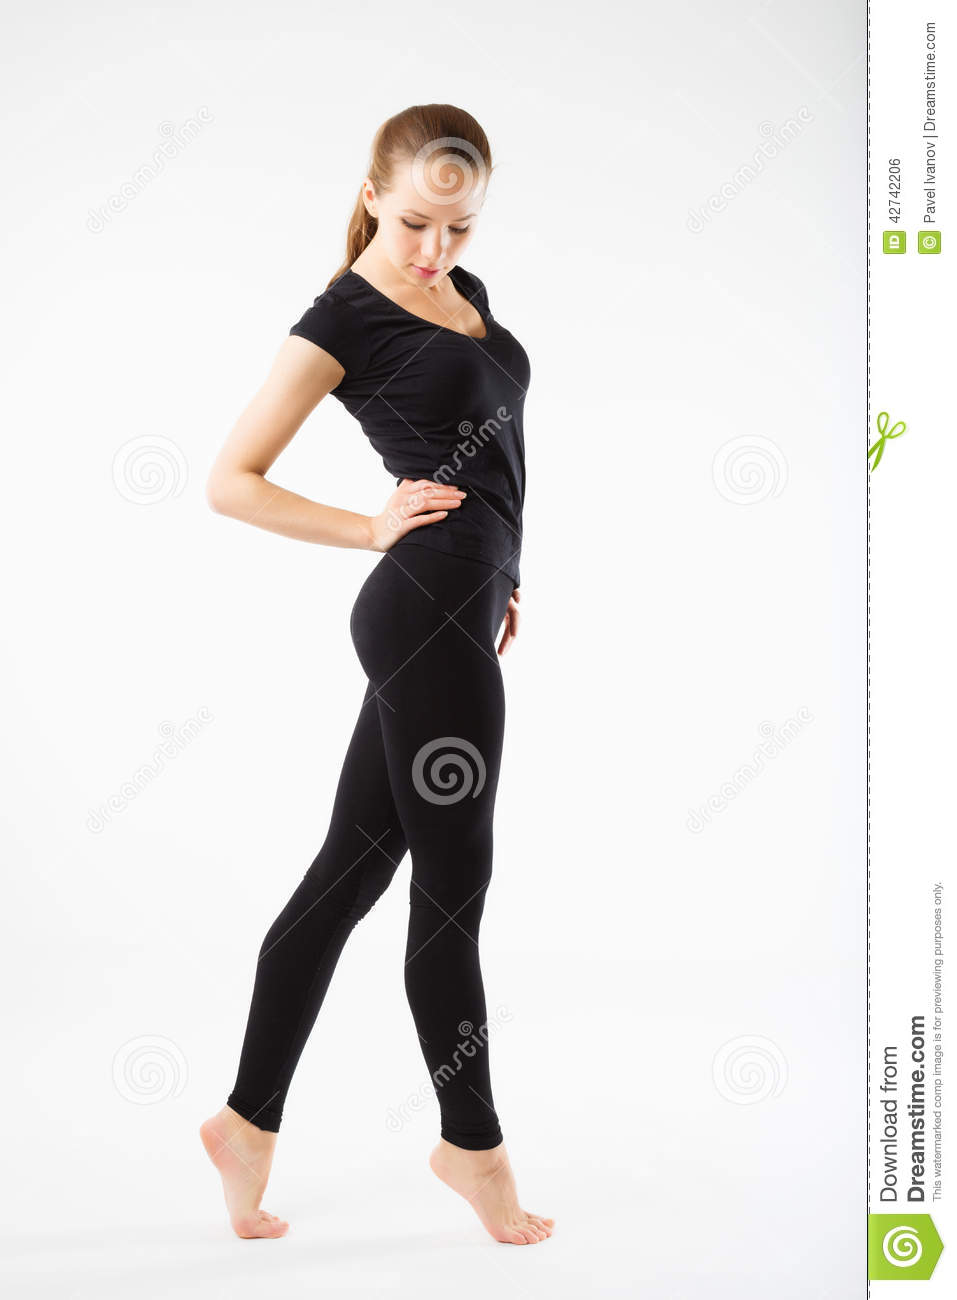 young beautiful woman posing in a gym outfit young